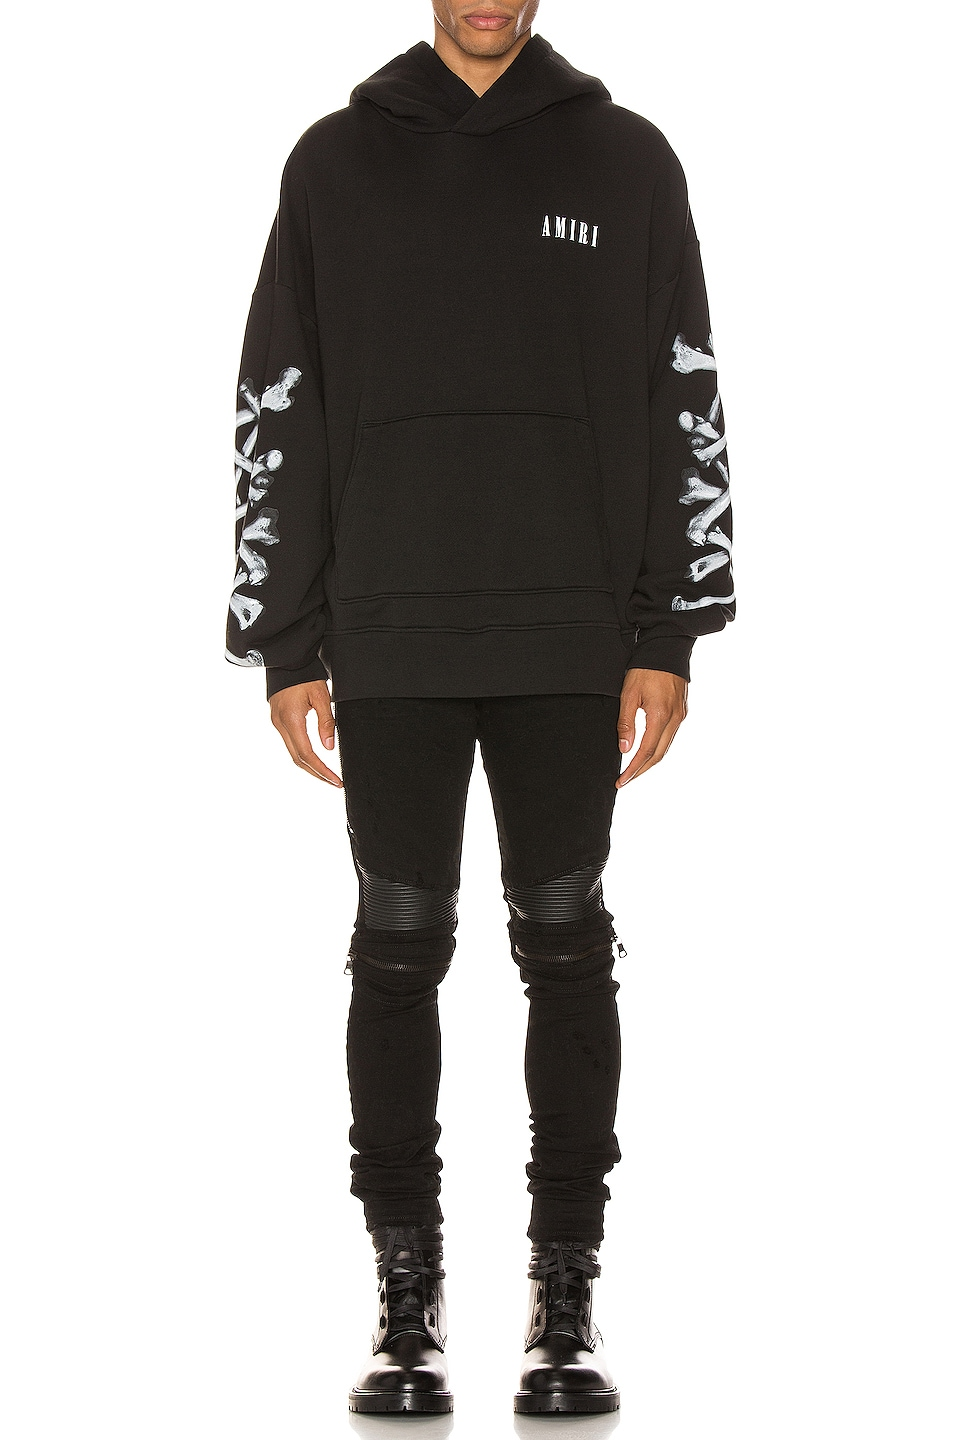 Image 5 of Amiri Bones Hoodie in Black & White